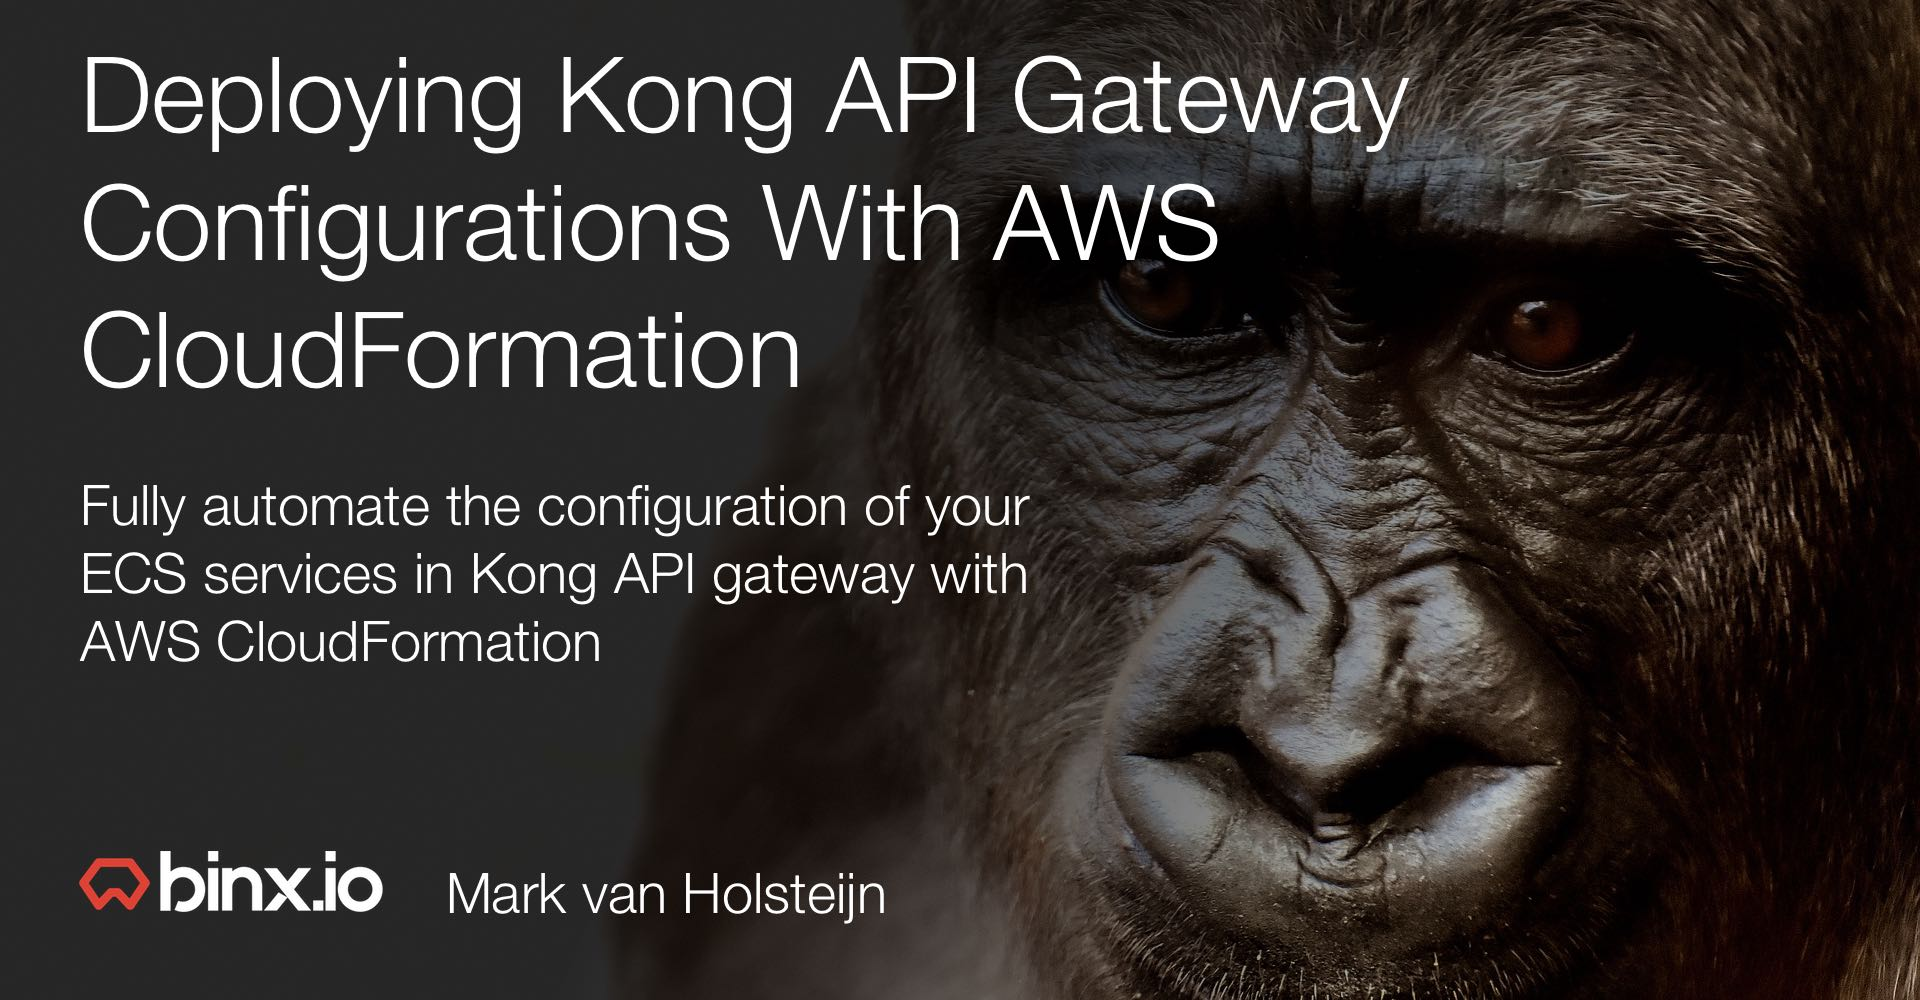 Deploying Kong API gateway configurations with AWS CloudFormation